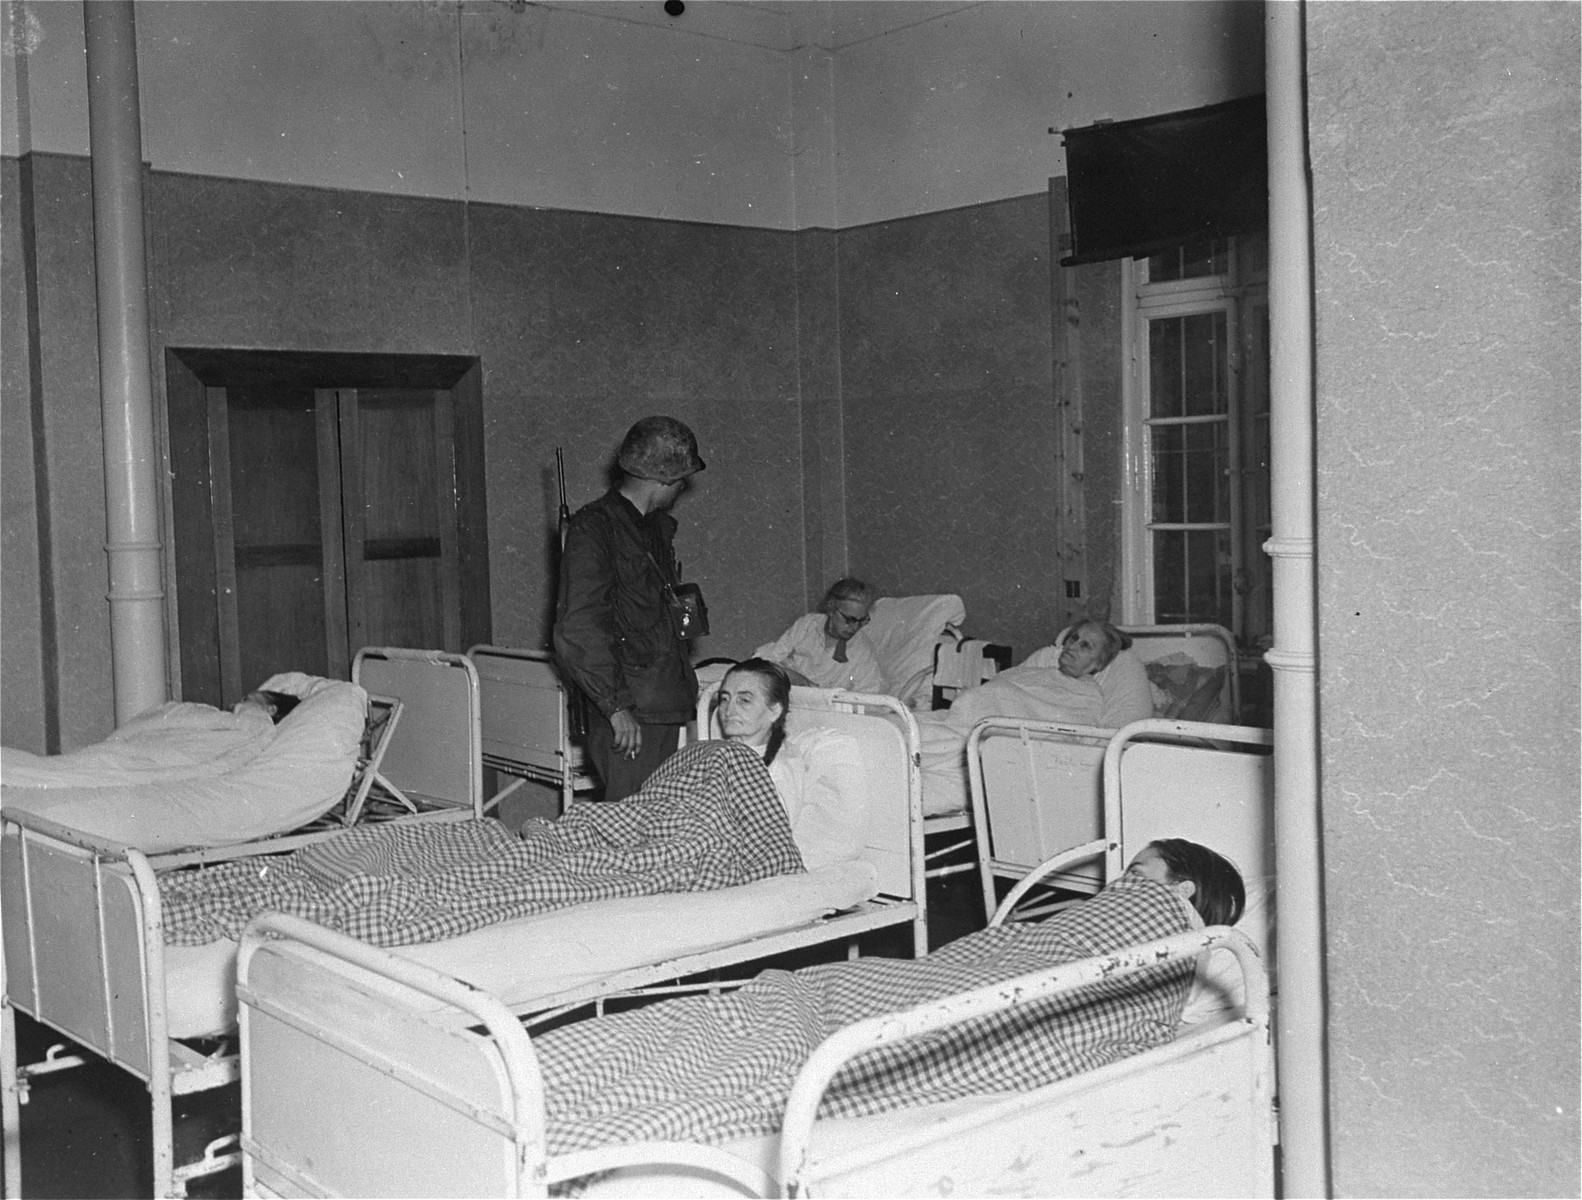 Lt. Alexander J. Wedderburn, photographer with the 28th Infantry Division, First US.Army, questions elderly survivors who are lying in bed at the Hadamar Institute.   The photograph was taken by an American military photographer soon after the liberation.